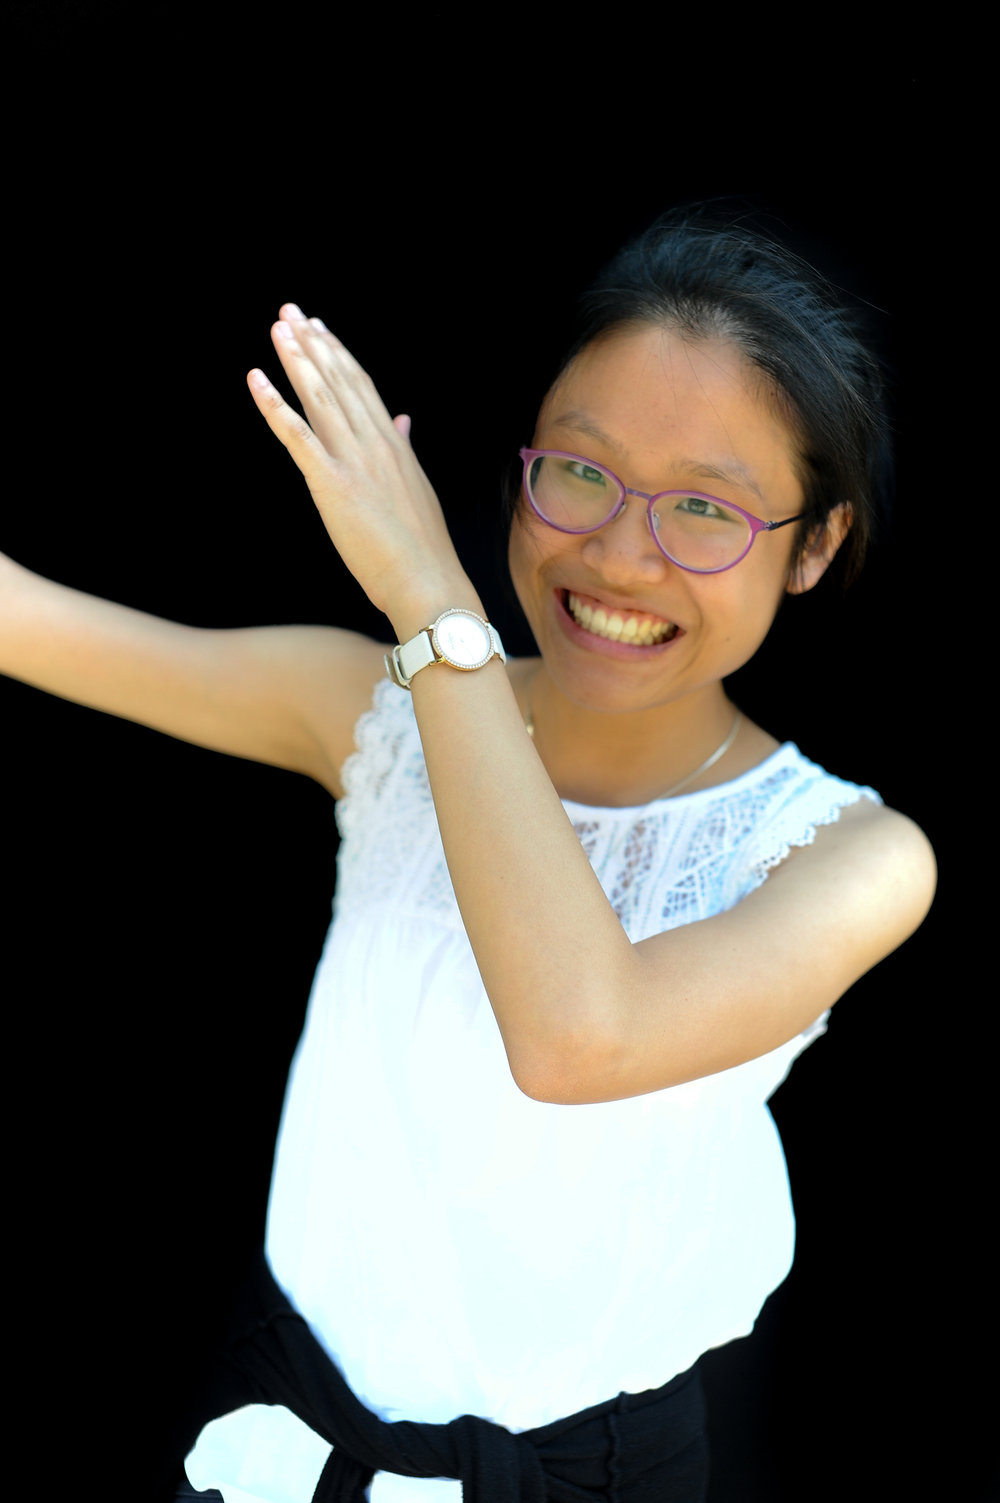 Name: Kimberly Guo